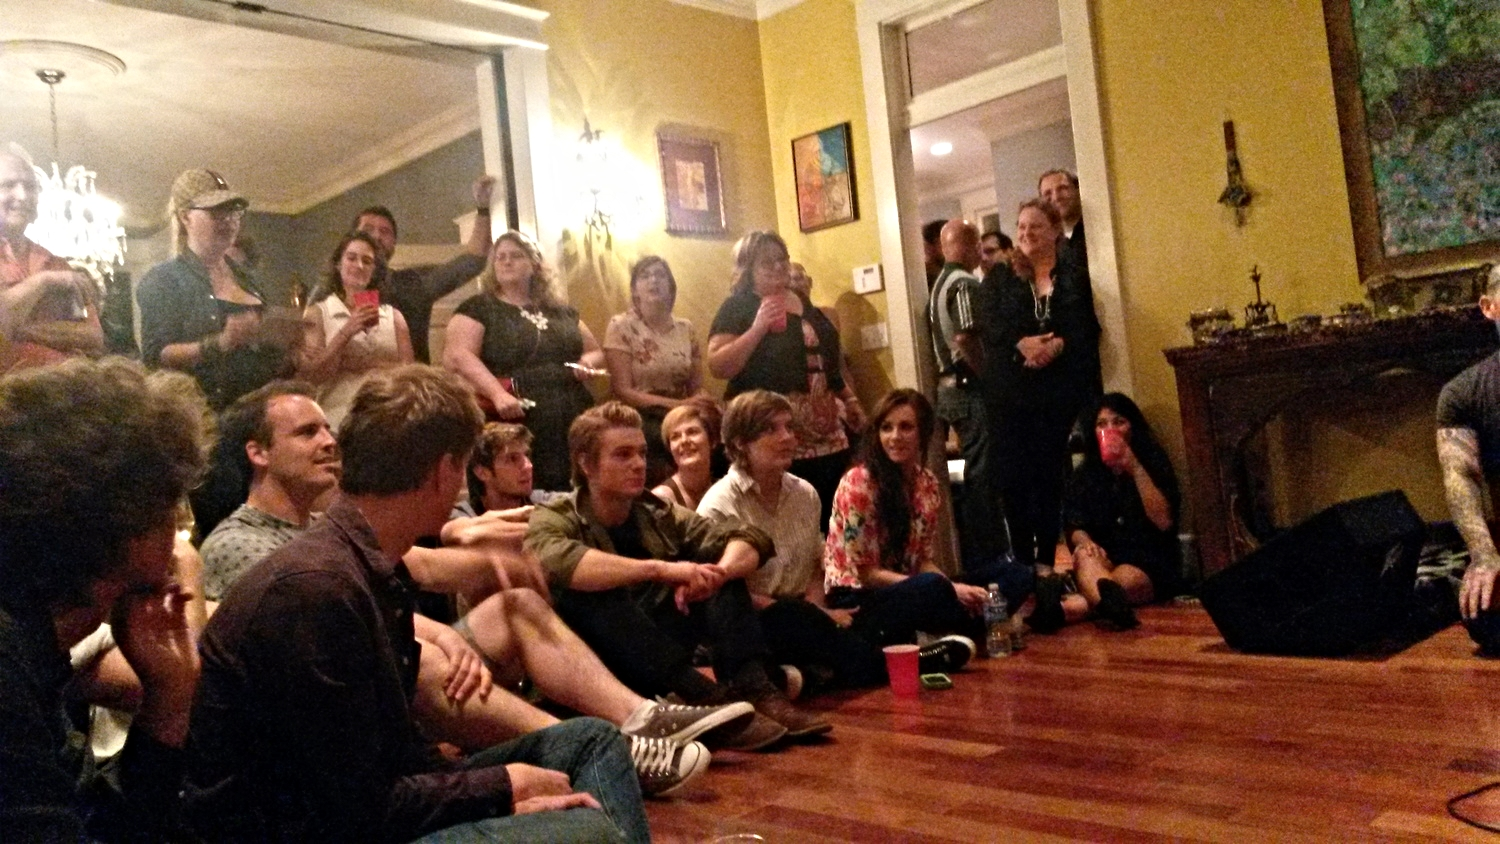 Everyone gathered round the speakers at the listening party.